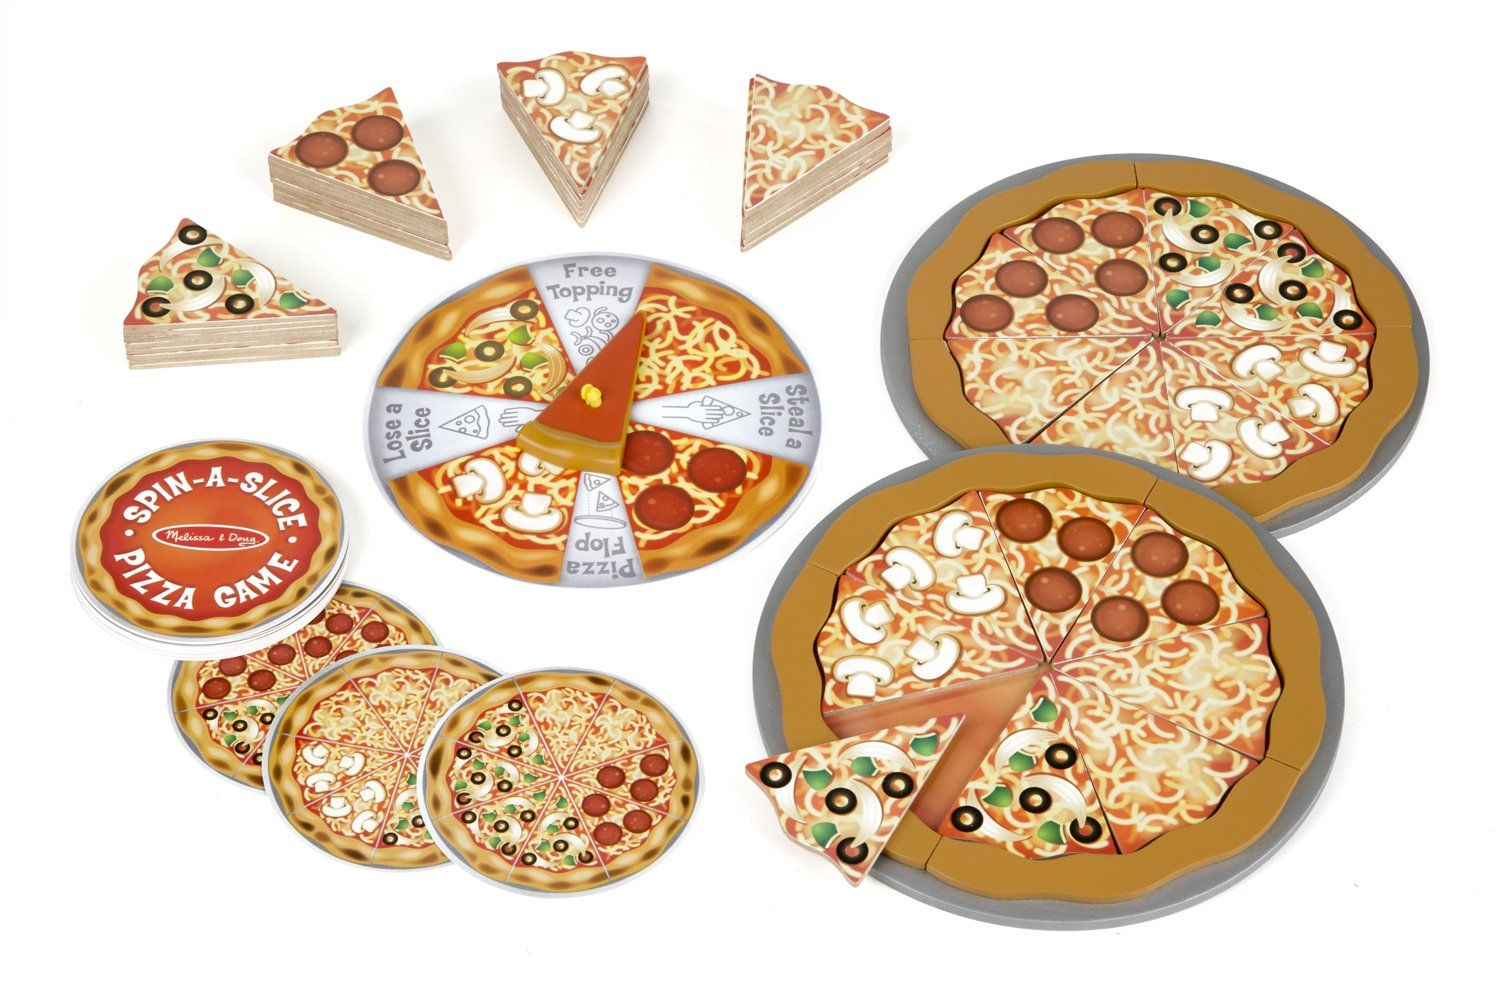 Melissa KidsGamesCollection Pizza games, Games for kids